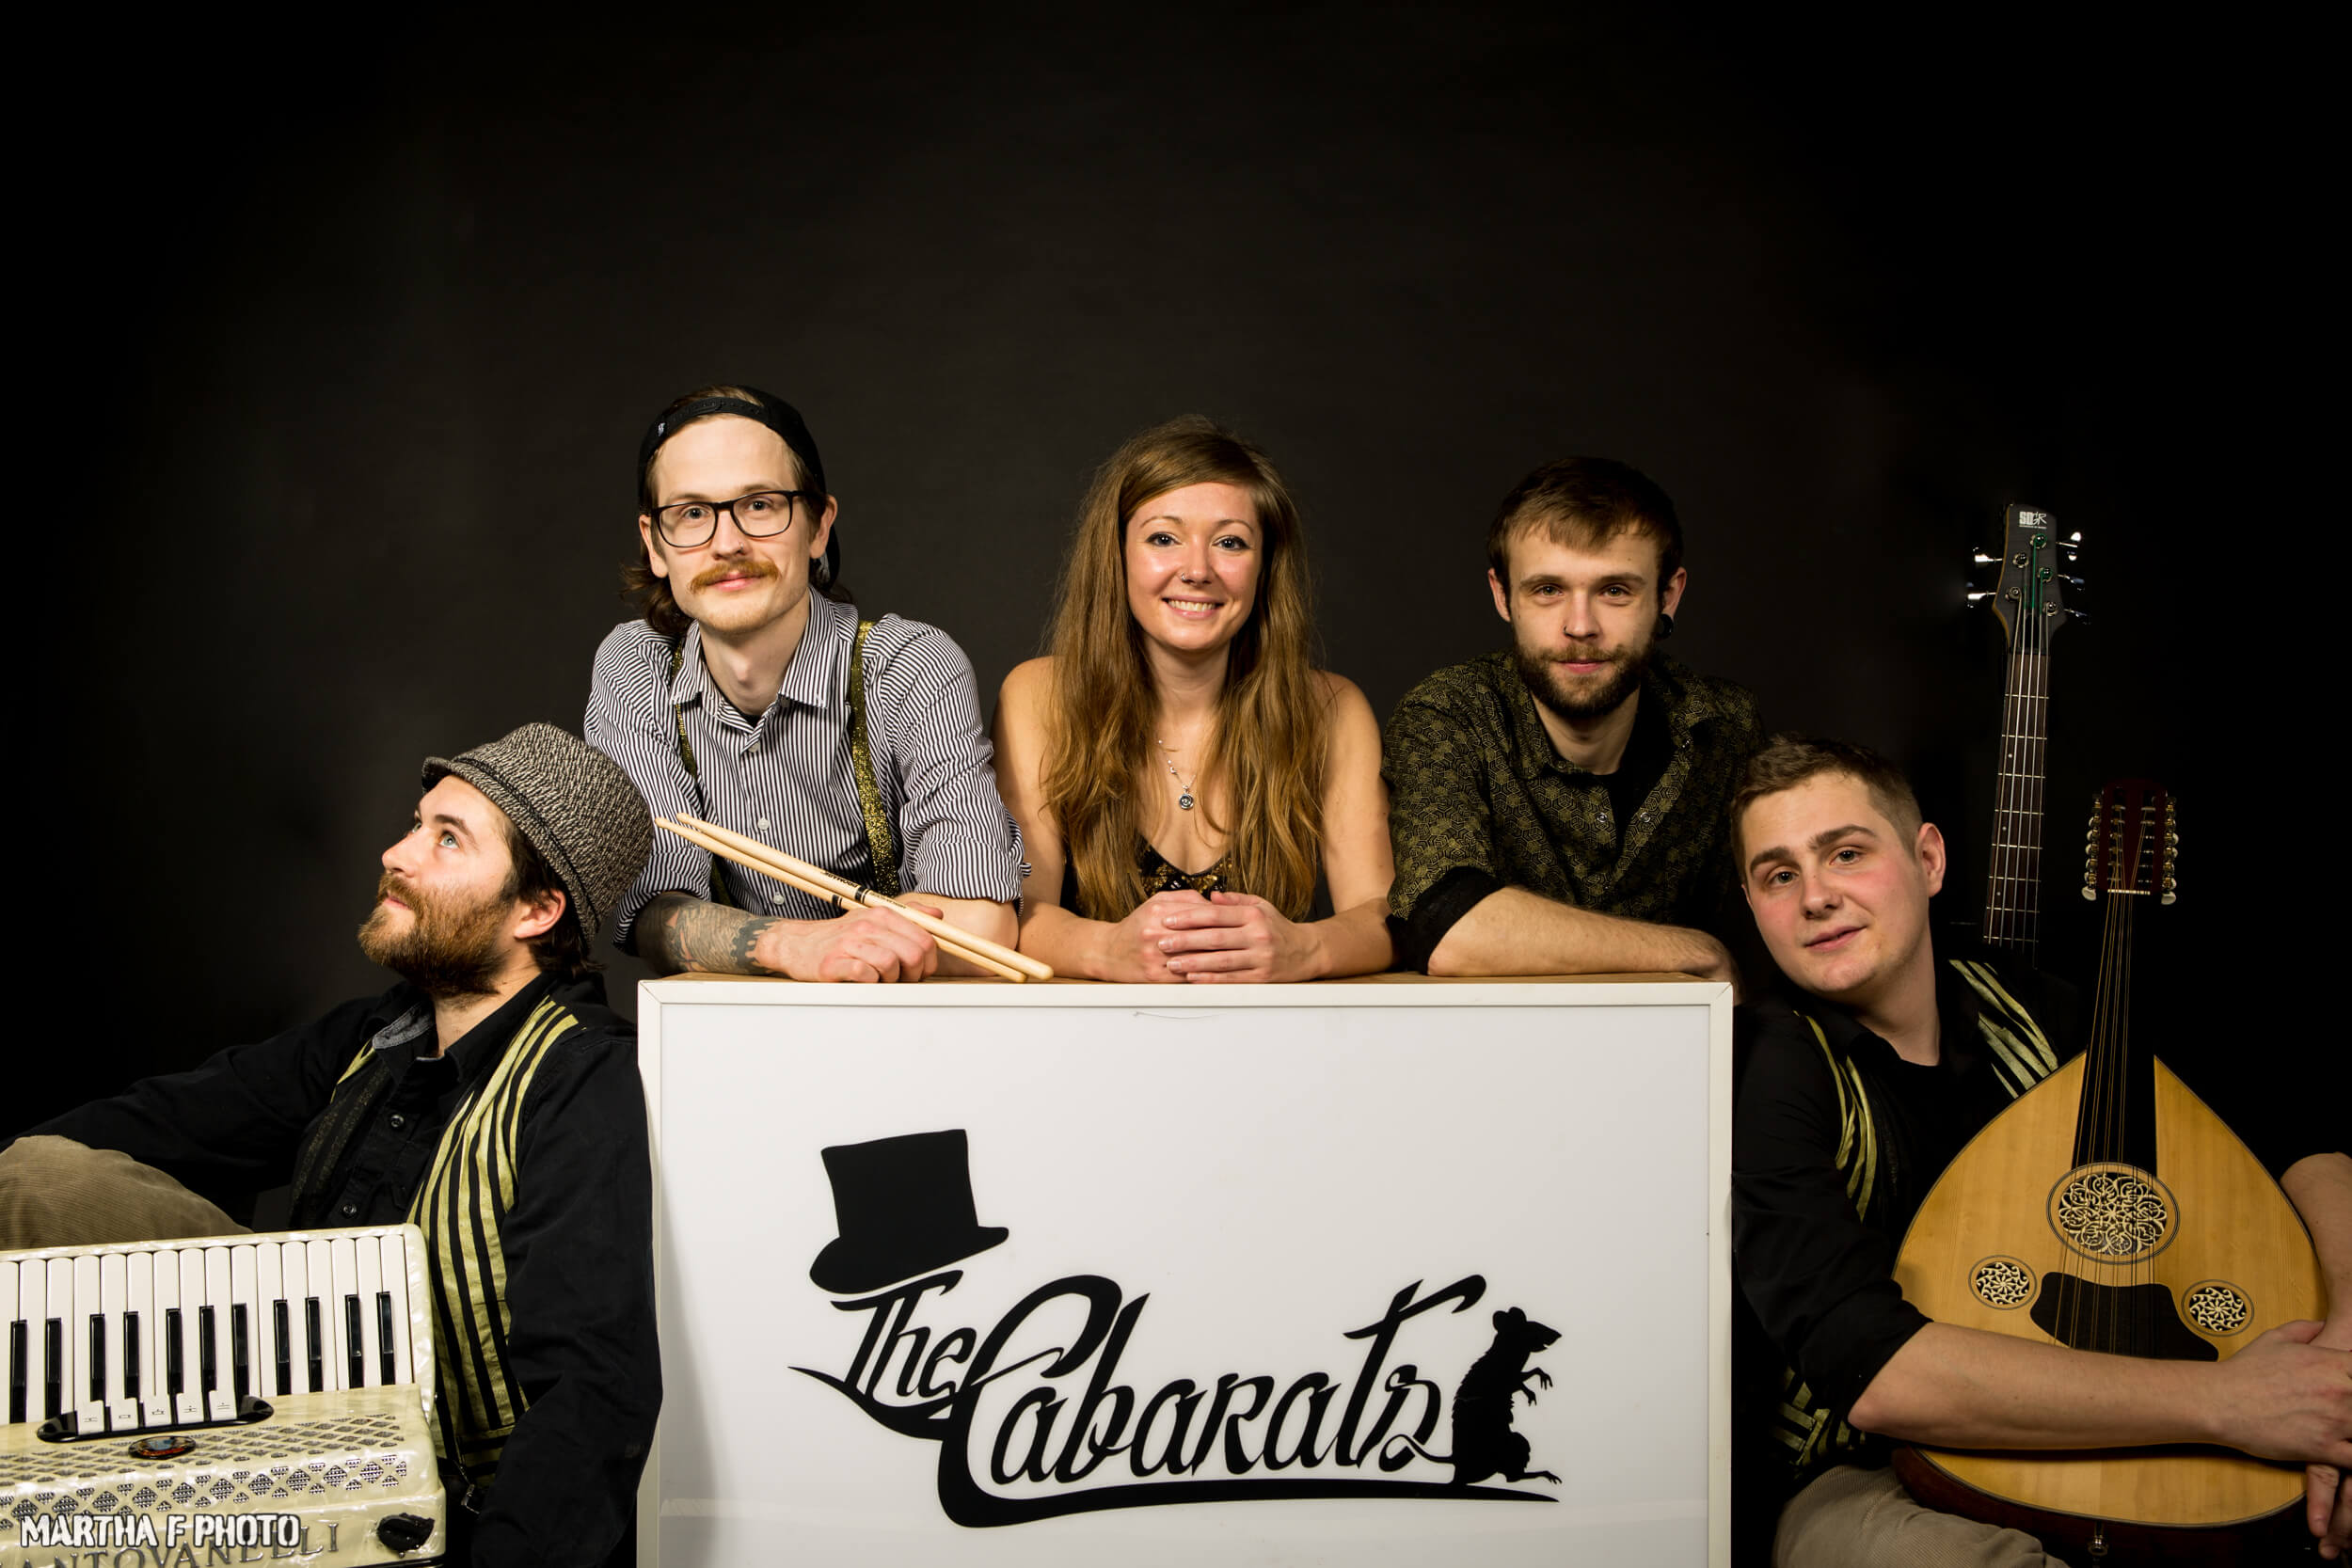 The Cabarats + support from Howlin' Herman & The Dwellers